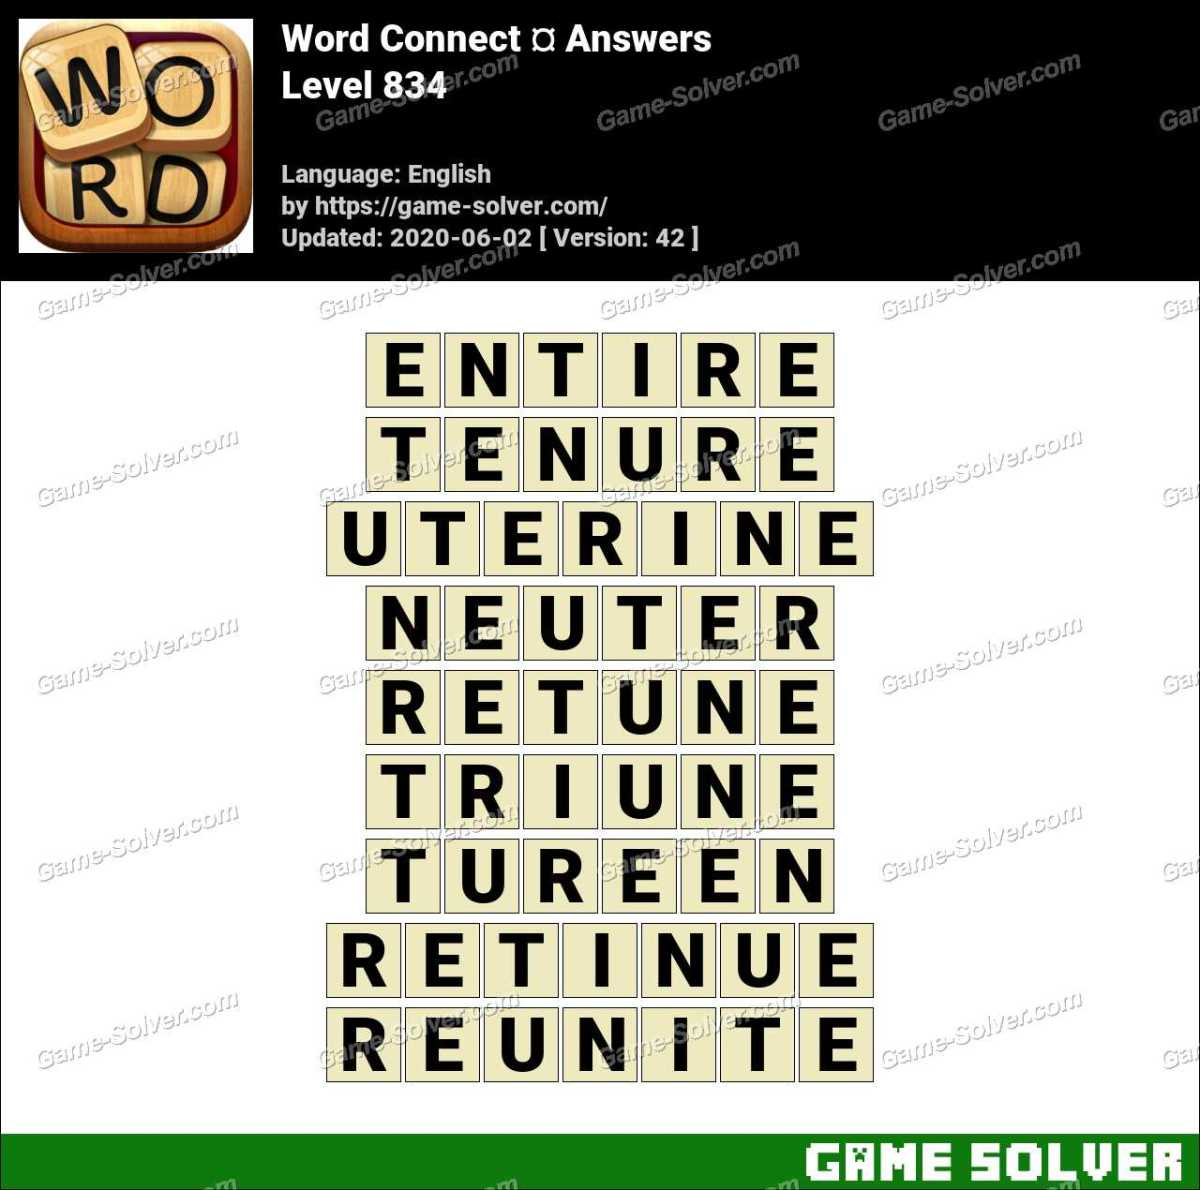 Word Connect Level 834 Answers